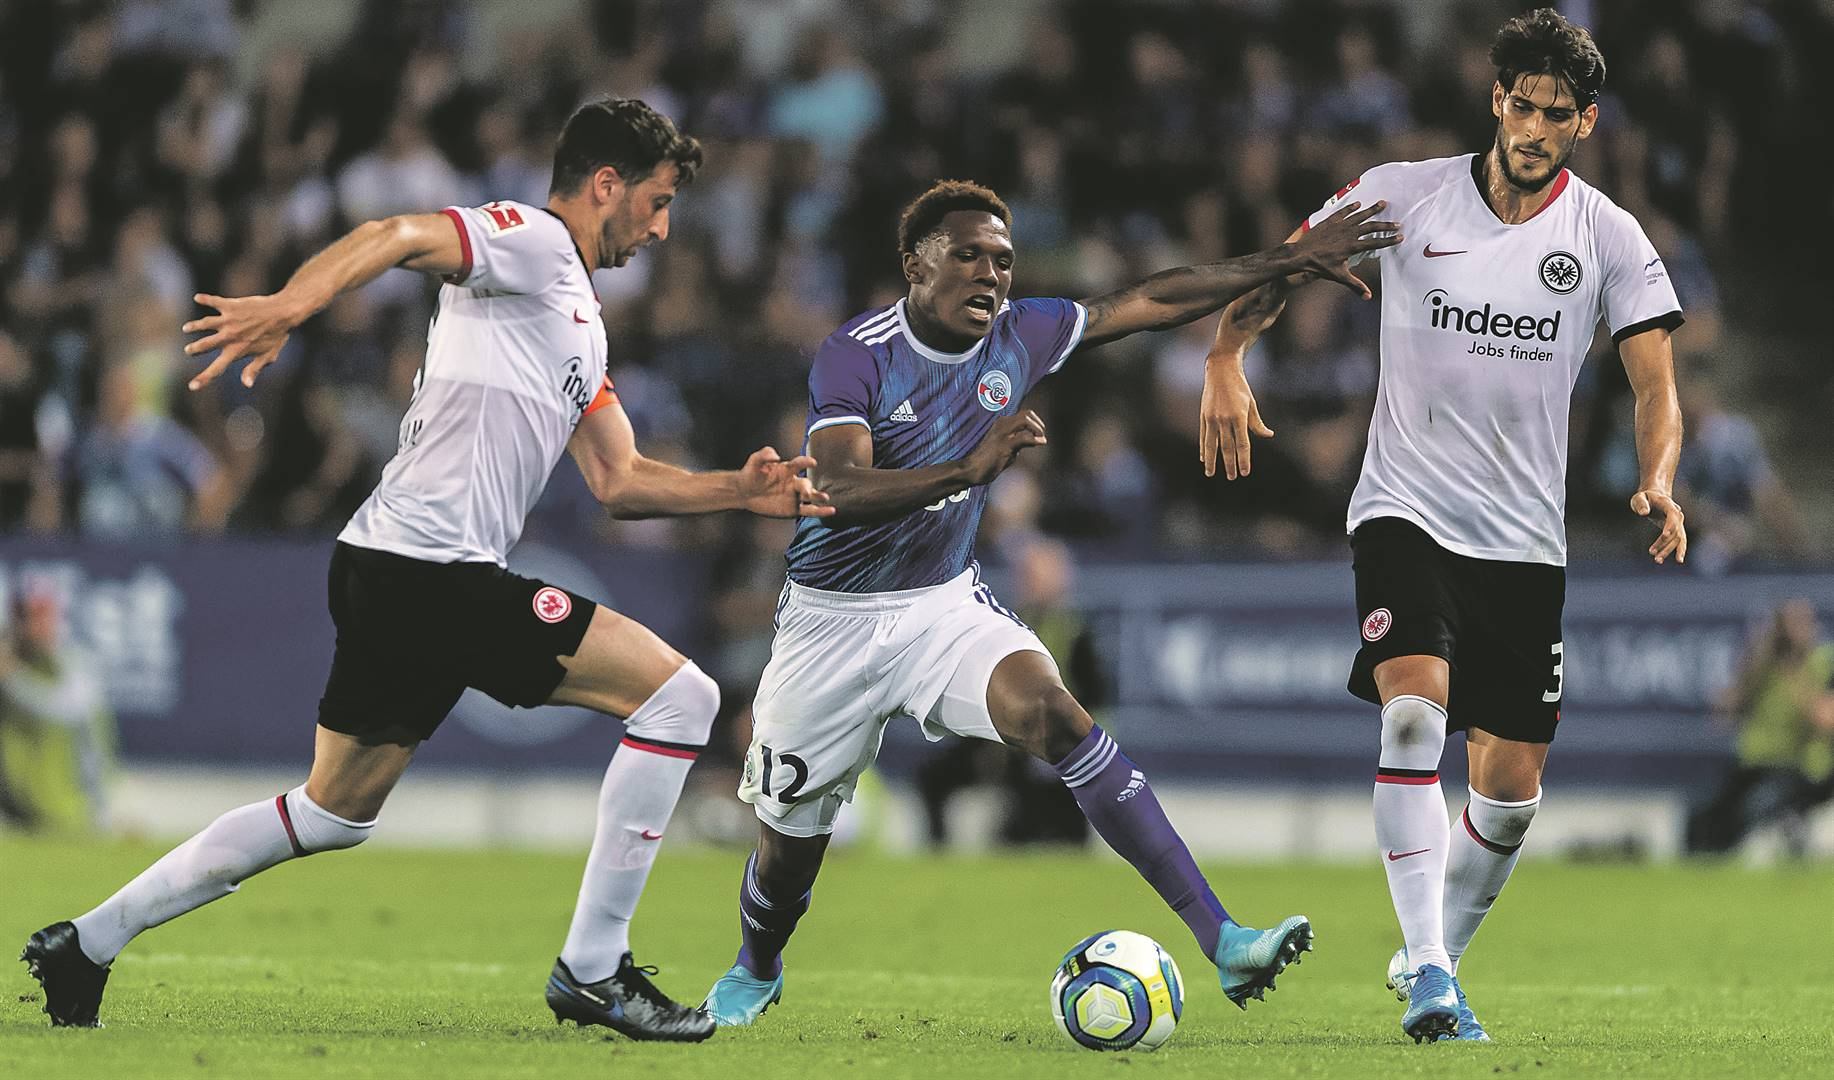 RC Strasbourg striker Lebogang Mothiba, with his distinctive tucked-in shirt, powers his way past Frankfurt defenders David Abraham and Gonçalo Paciência. Mothiba is expected to get playing minutes today. Picture: Alexander Scheuber / Getty Images